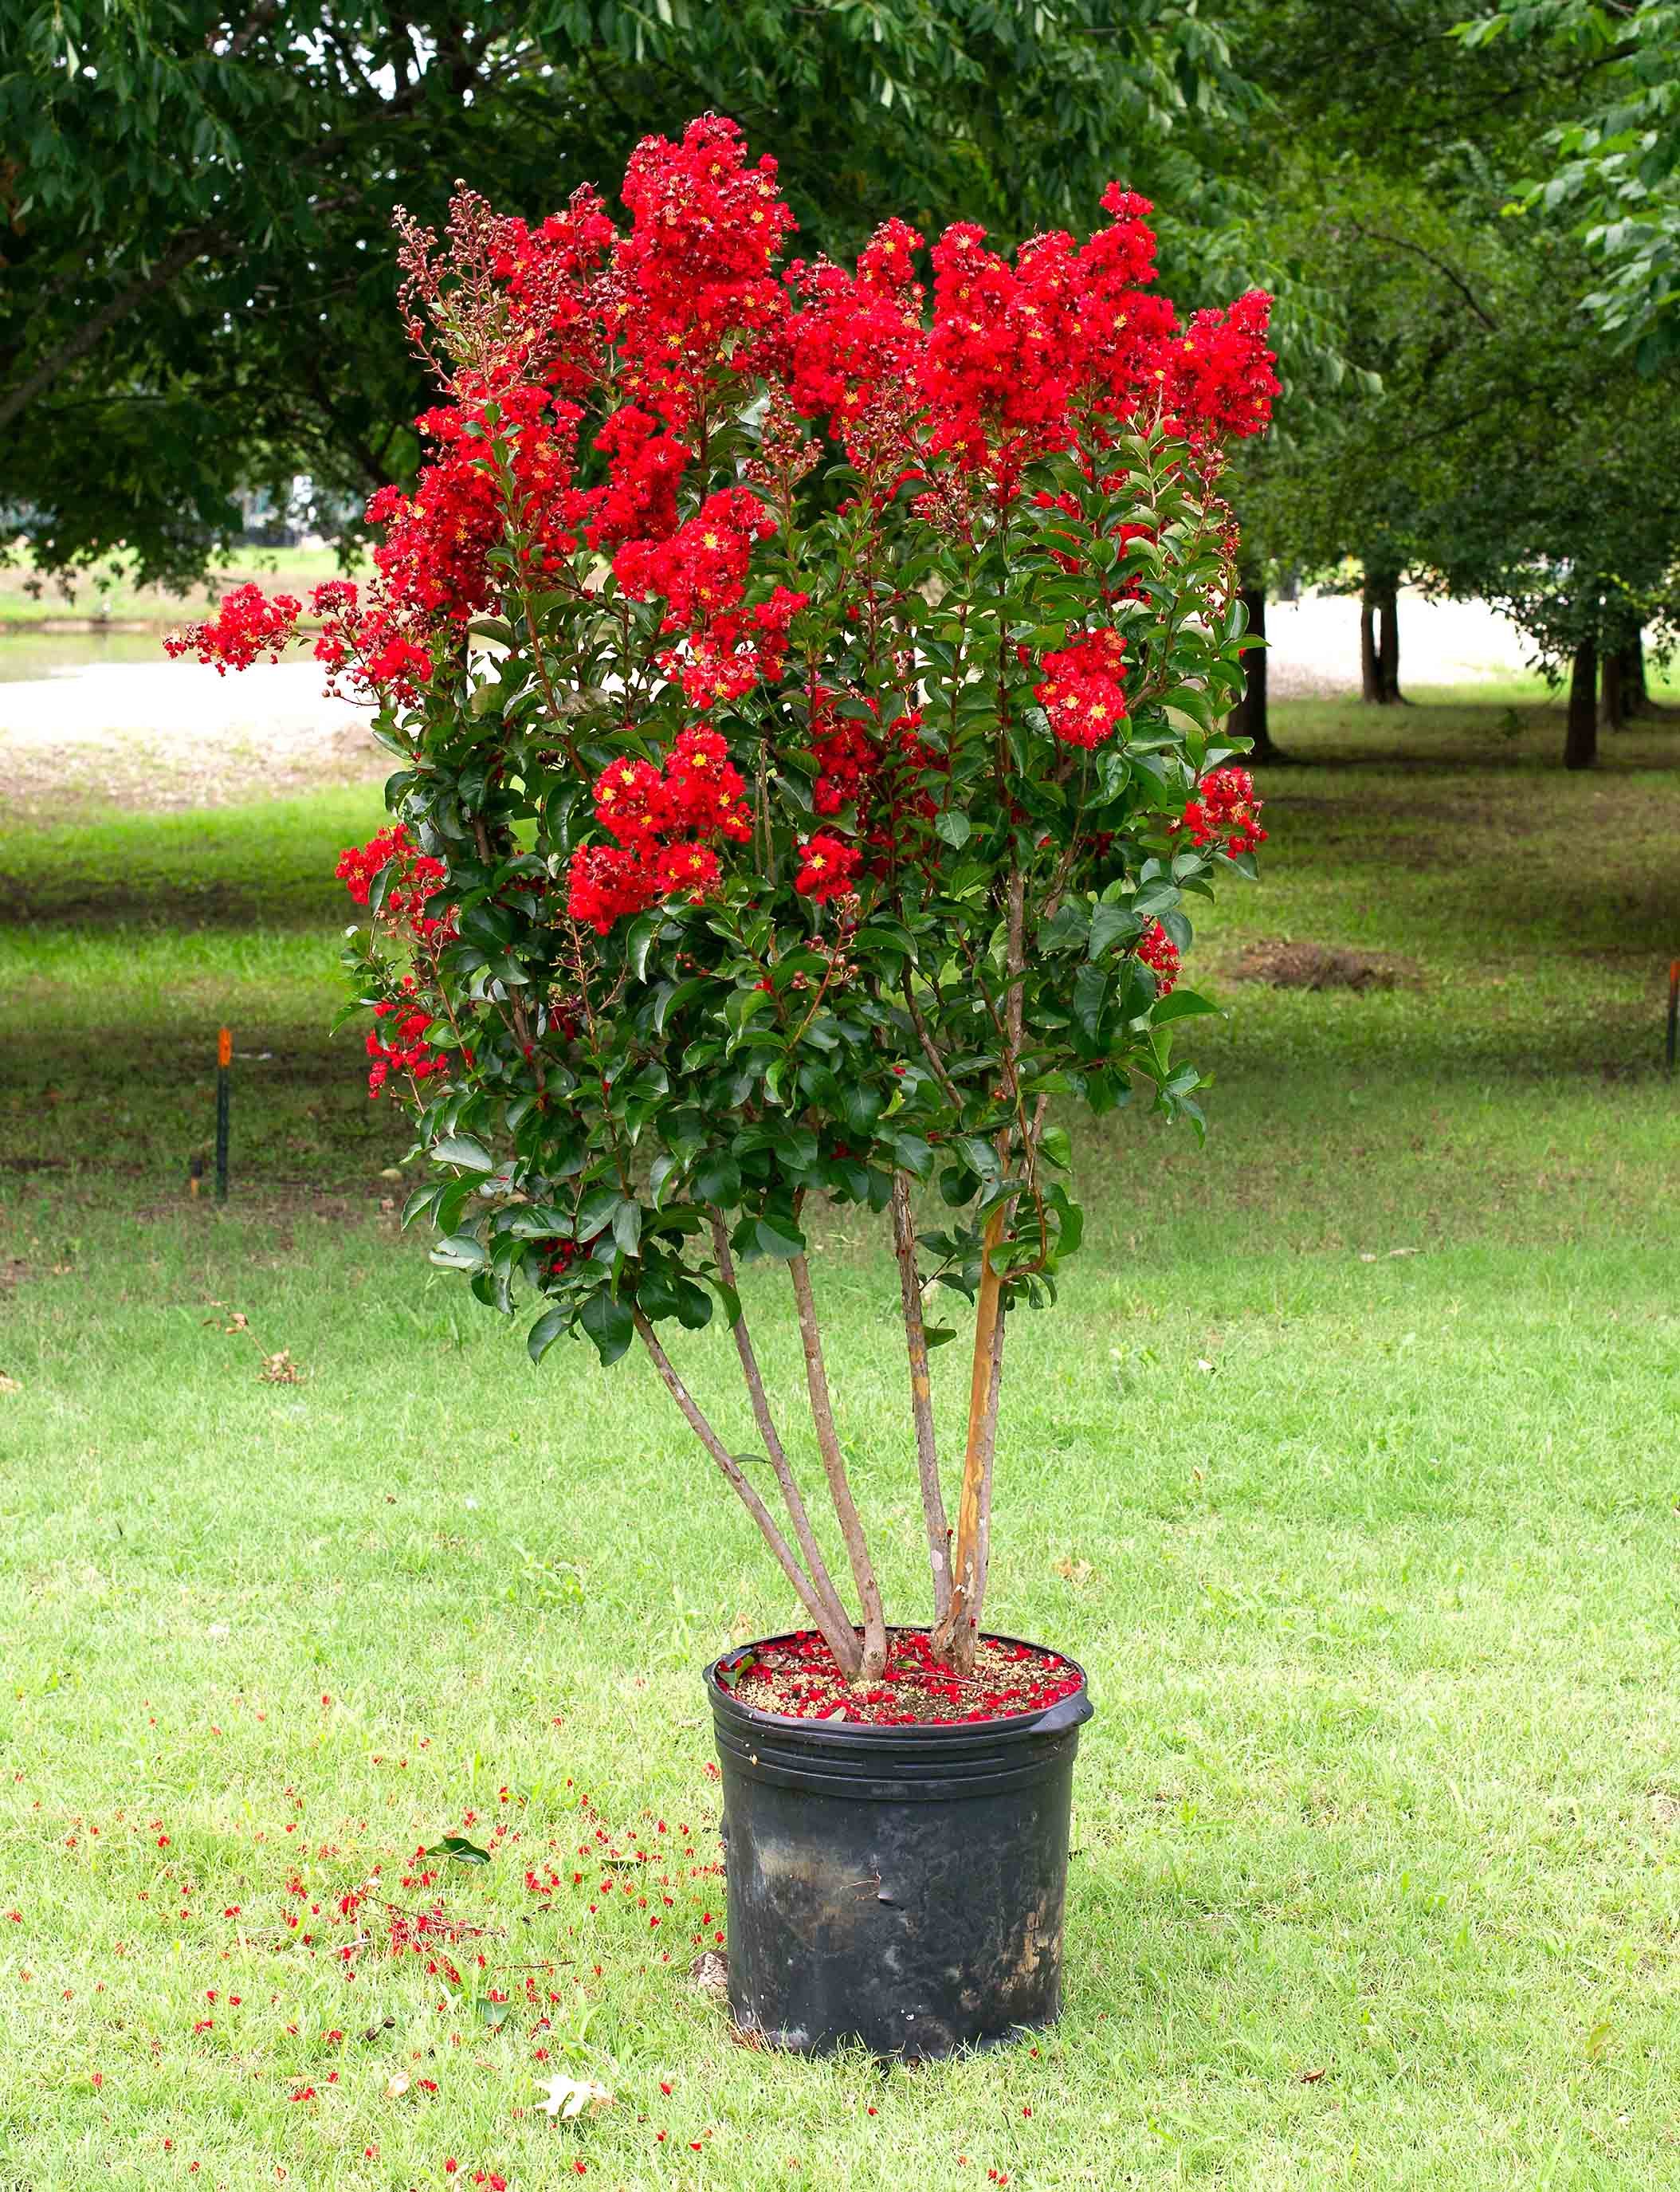 Miss Frances Crape Myrtle blooming in the Summer. Photographed at Treeland Nursery.